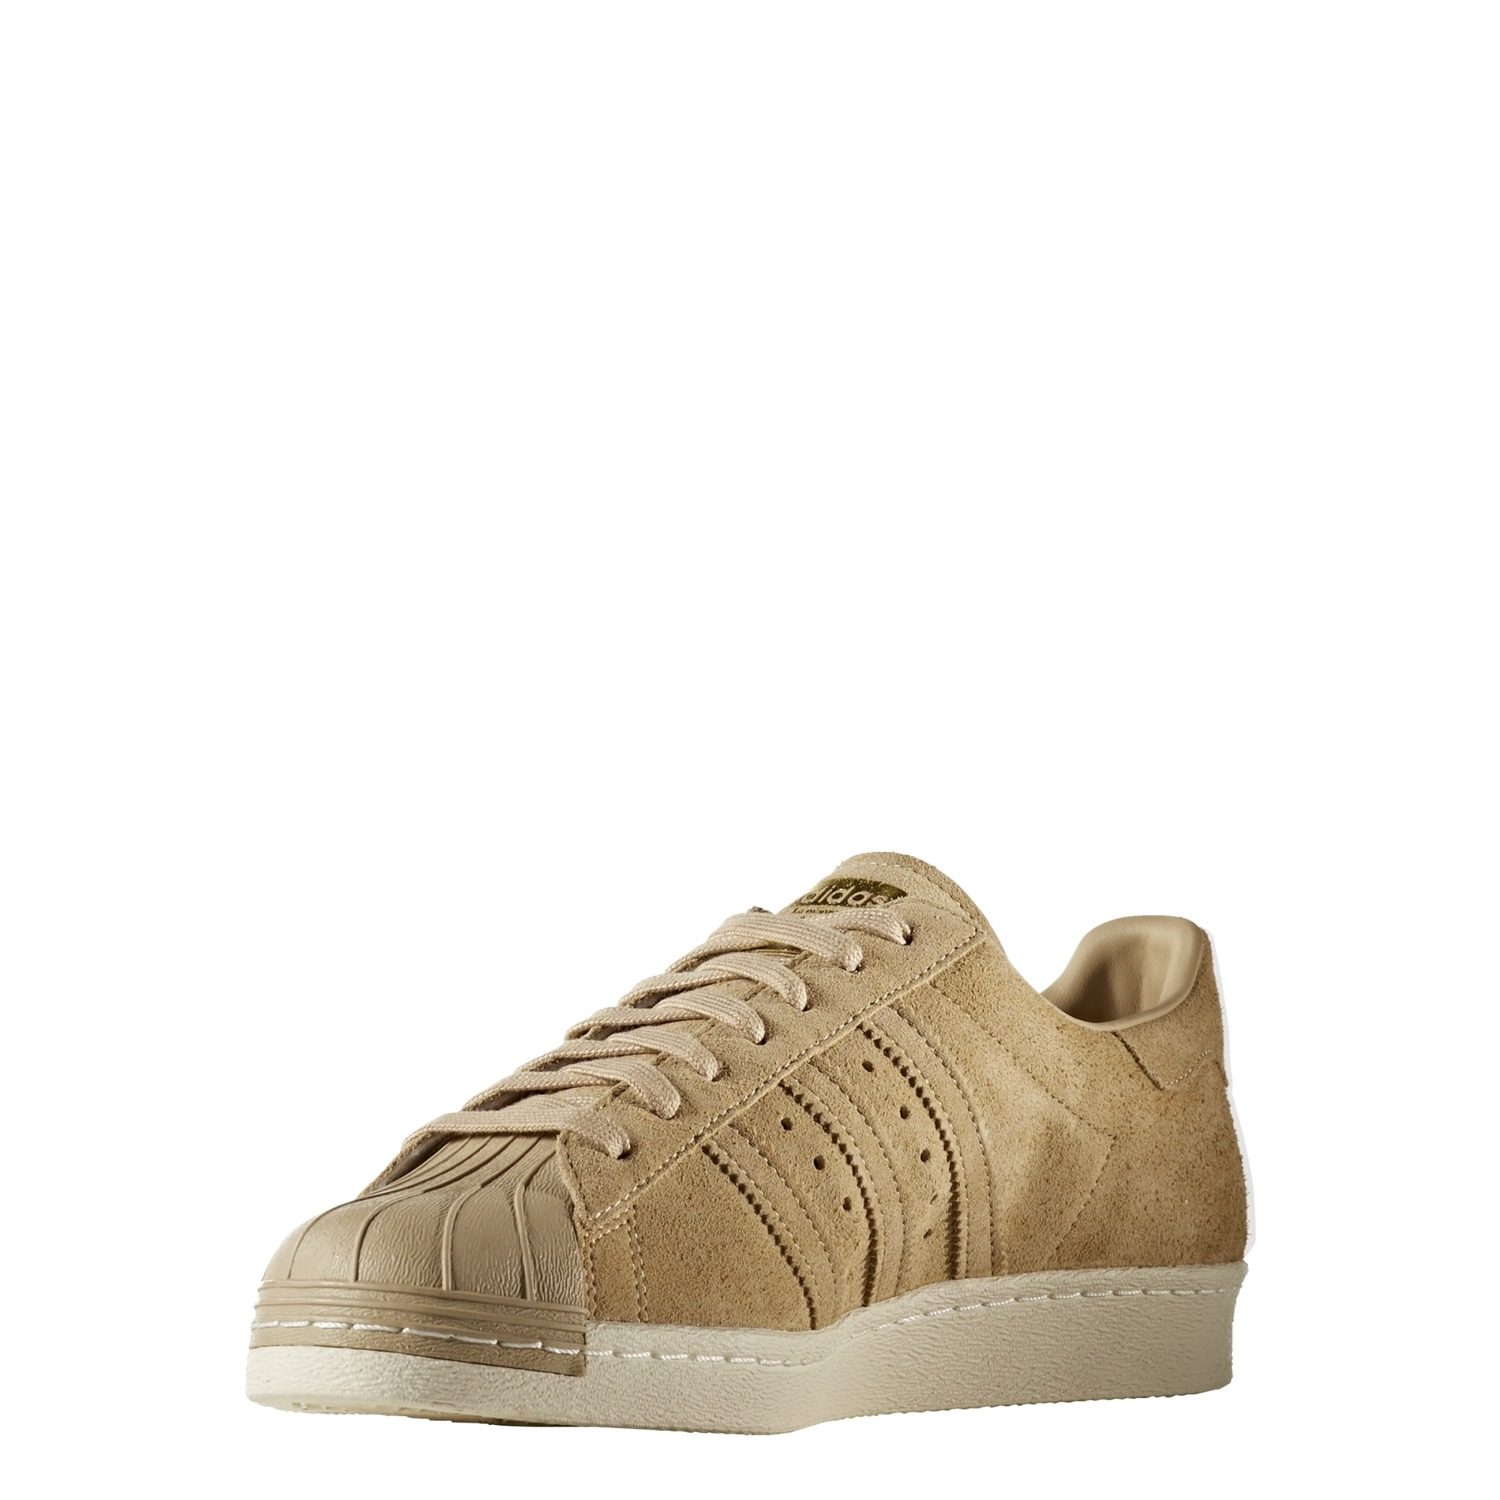 on sale 55146 d9c2f adidas boost sneakers for men